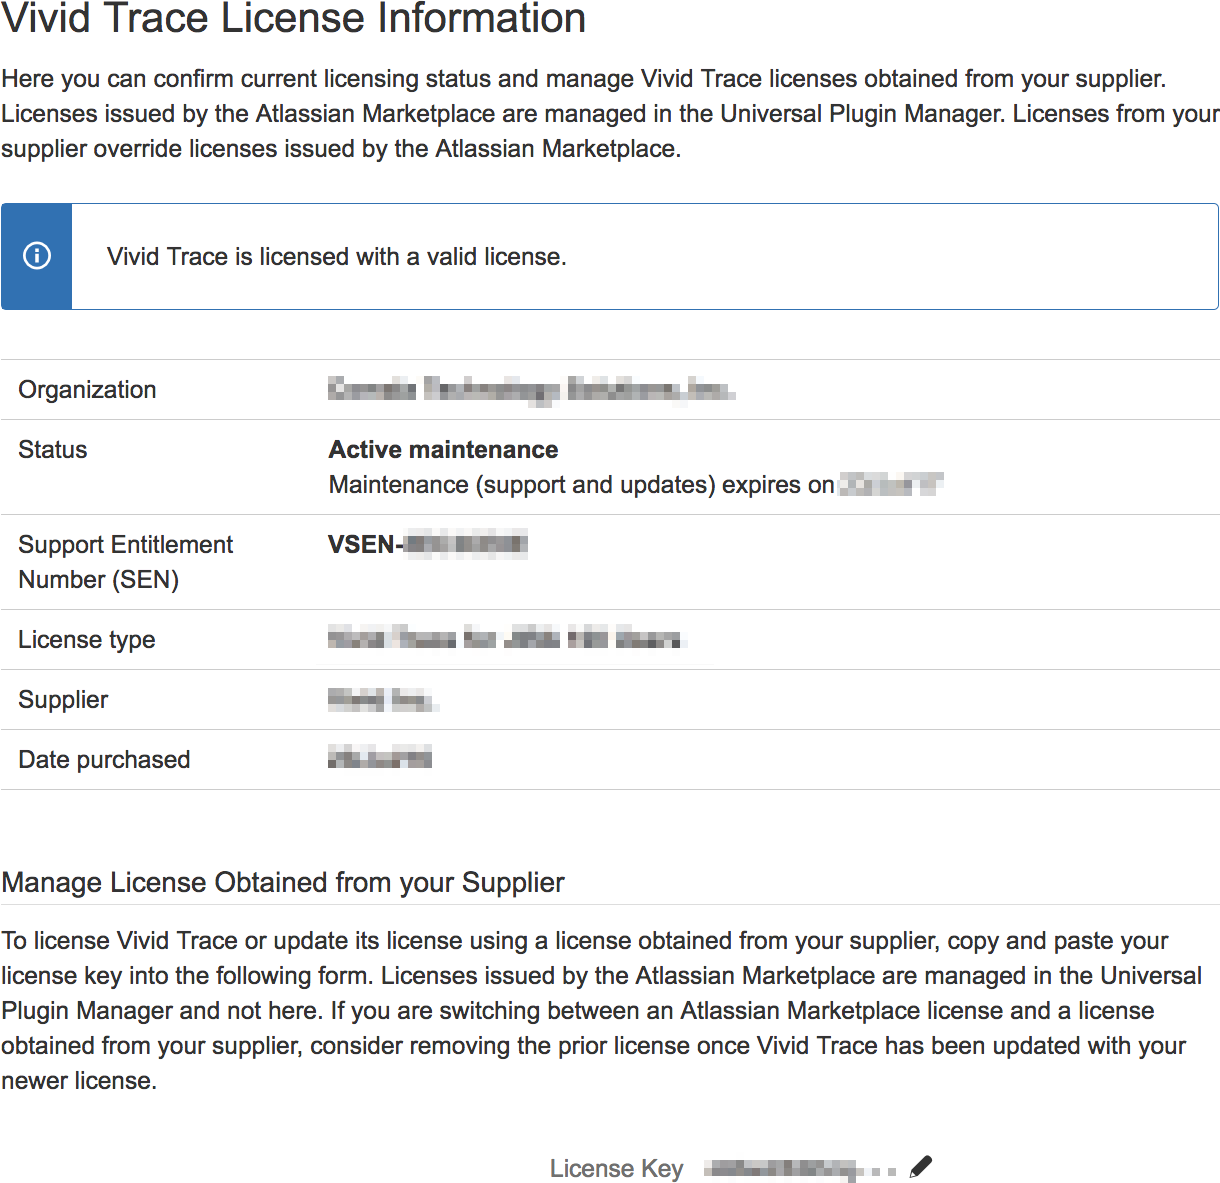 Figure: Vivid Trace License Information page in JIRA administration.